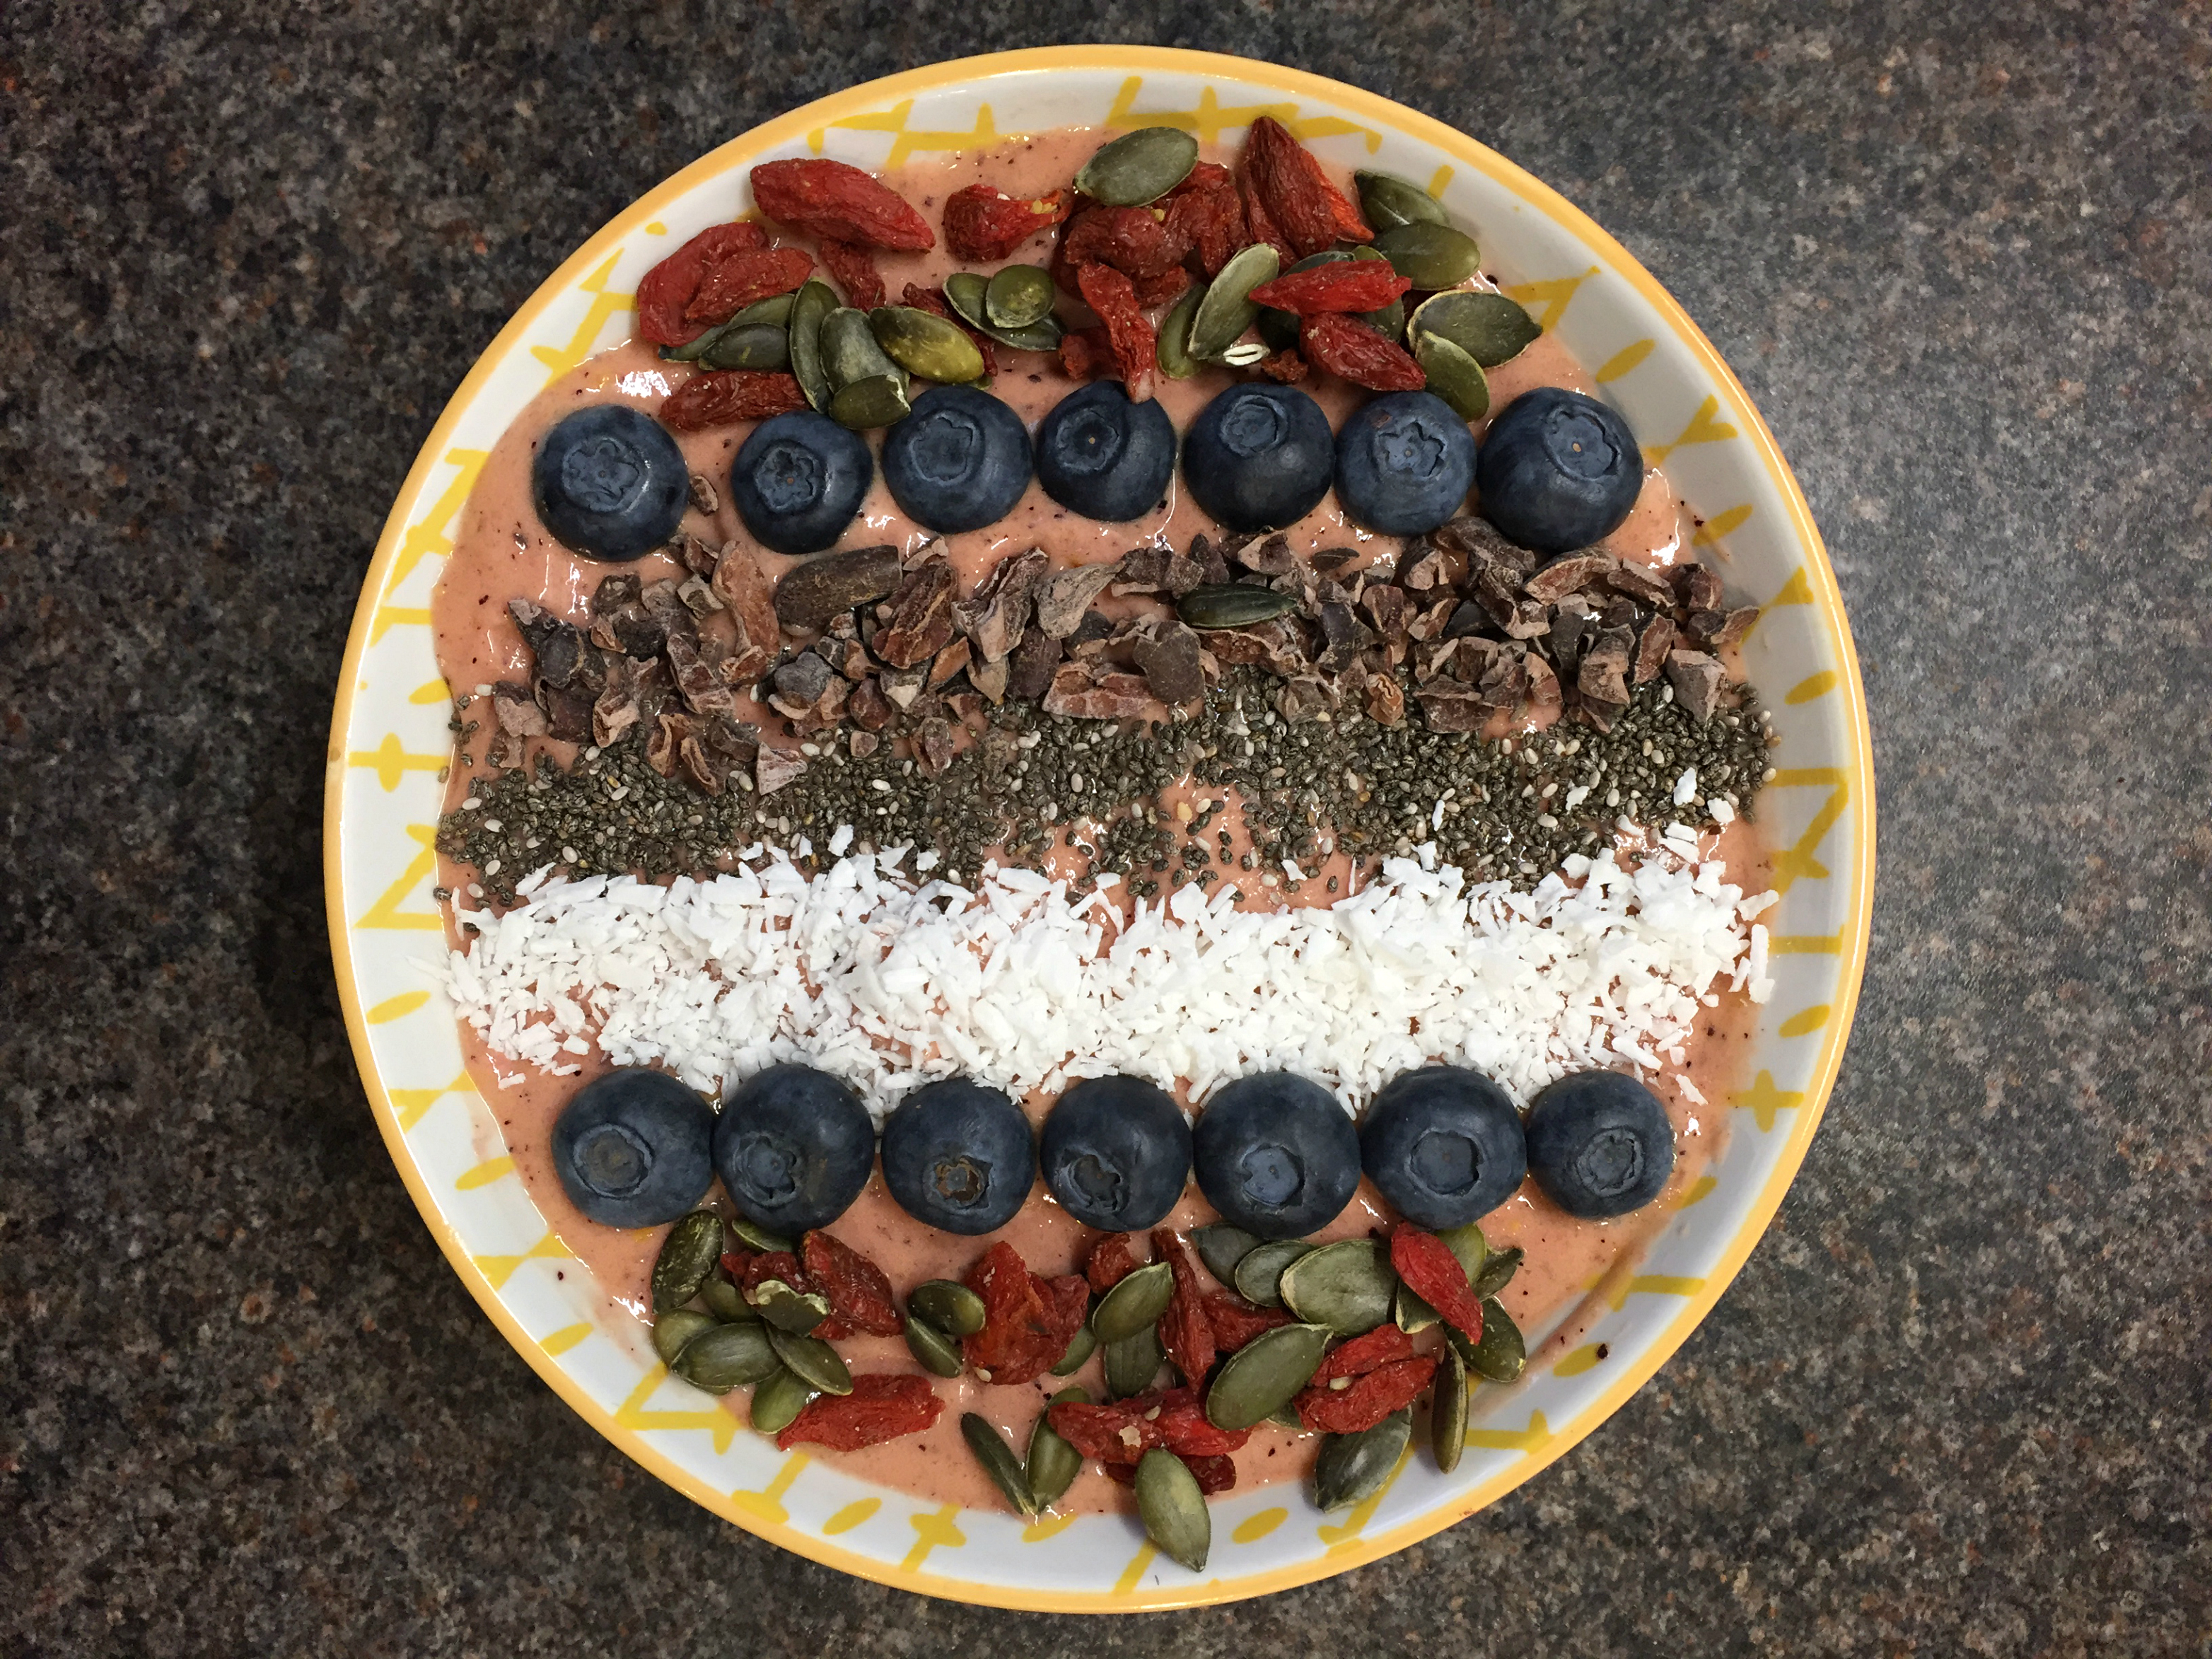 a smoothie bowl topped with coconut blueberries and nuts